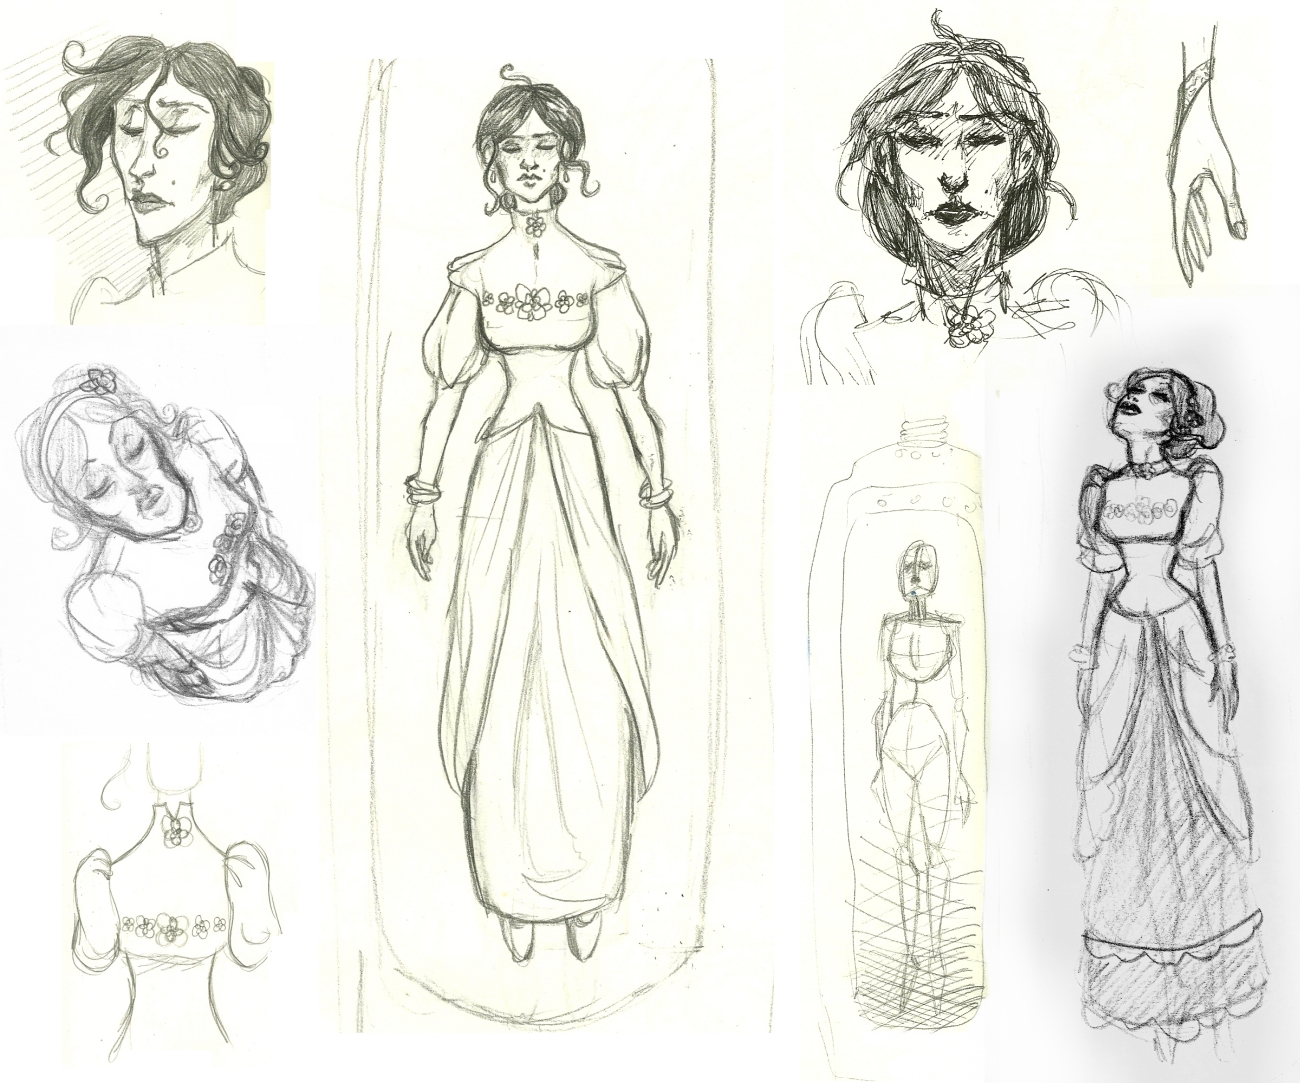 Character Design Essay : Distract with pen and paper character design